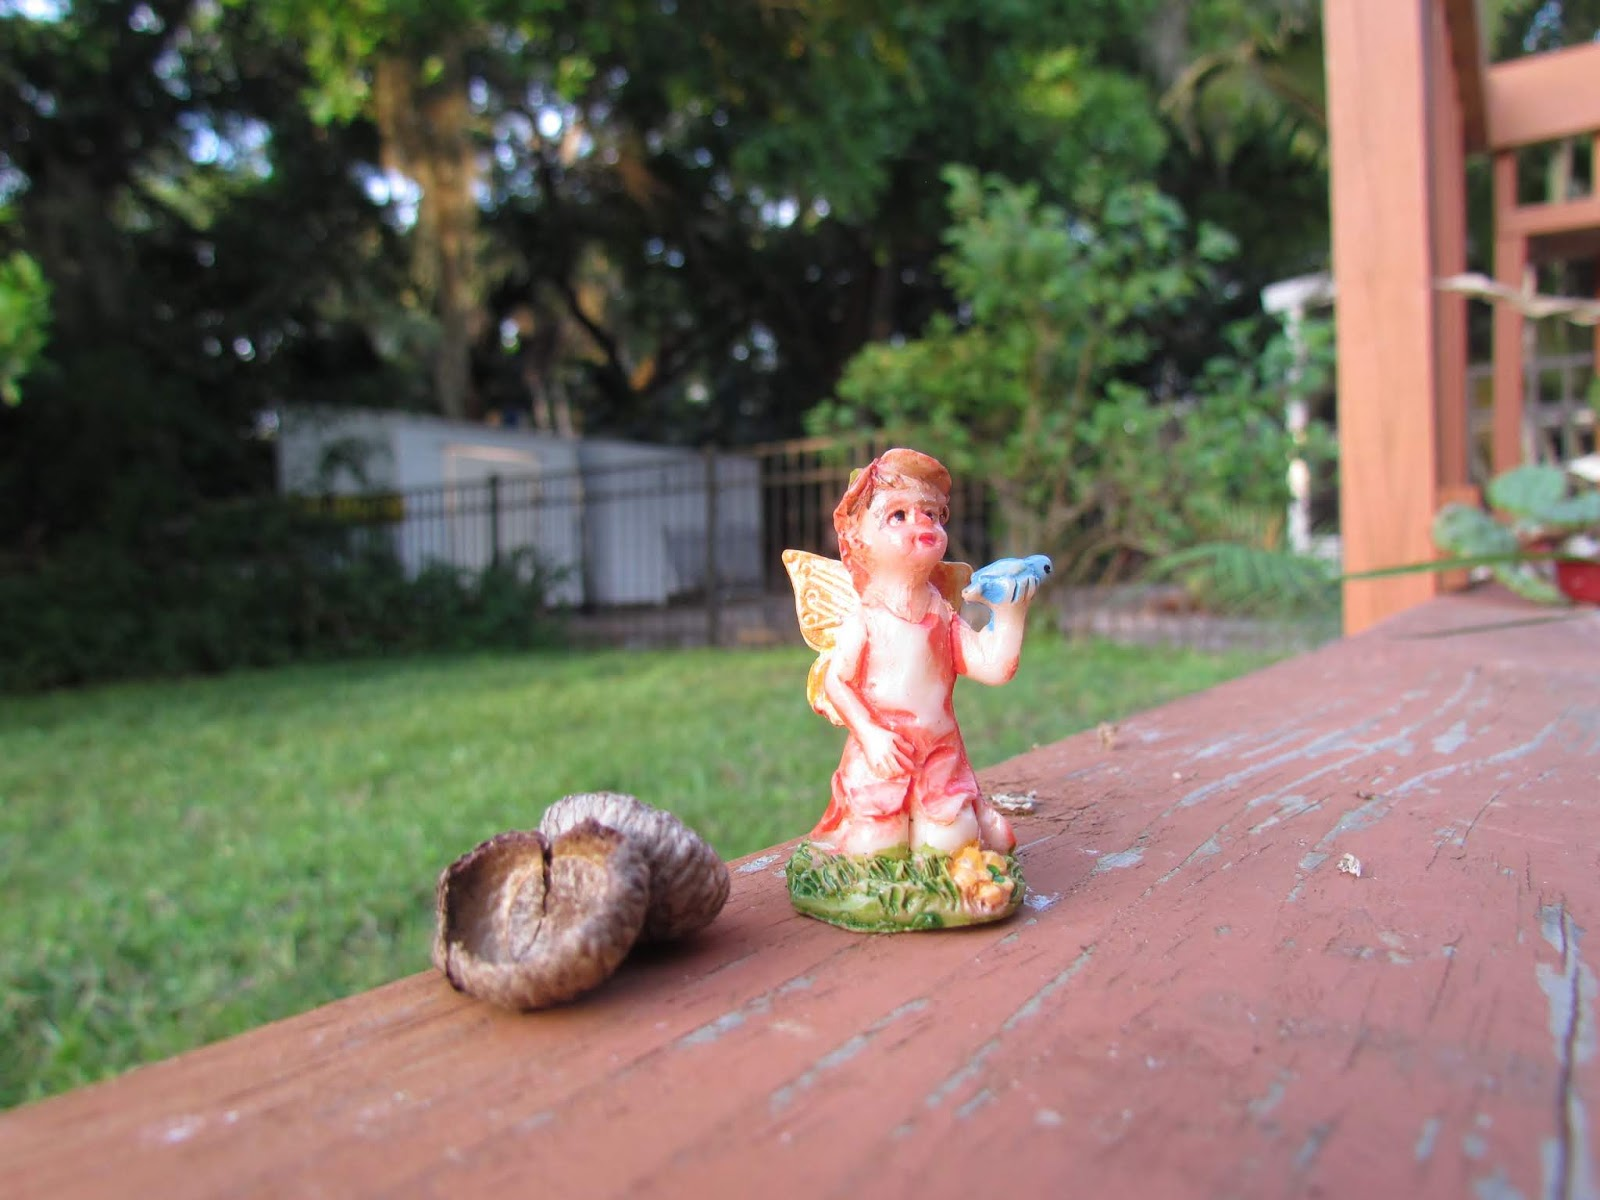 Orange Fairy Boy Figurine with Green Leaf and Brd + Acorn in Backyard in Nature